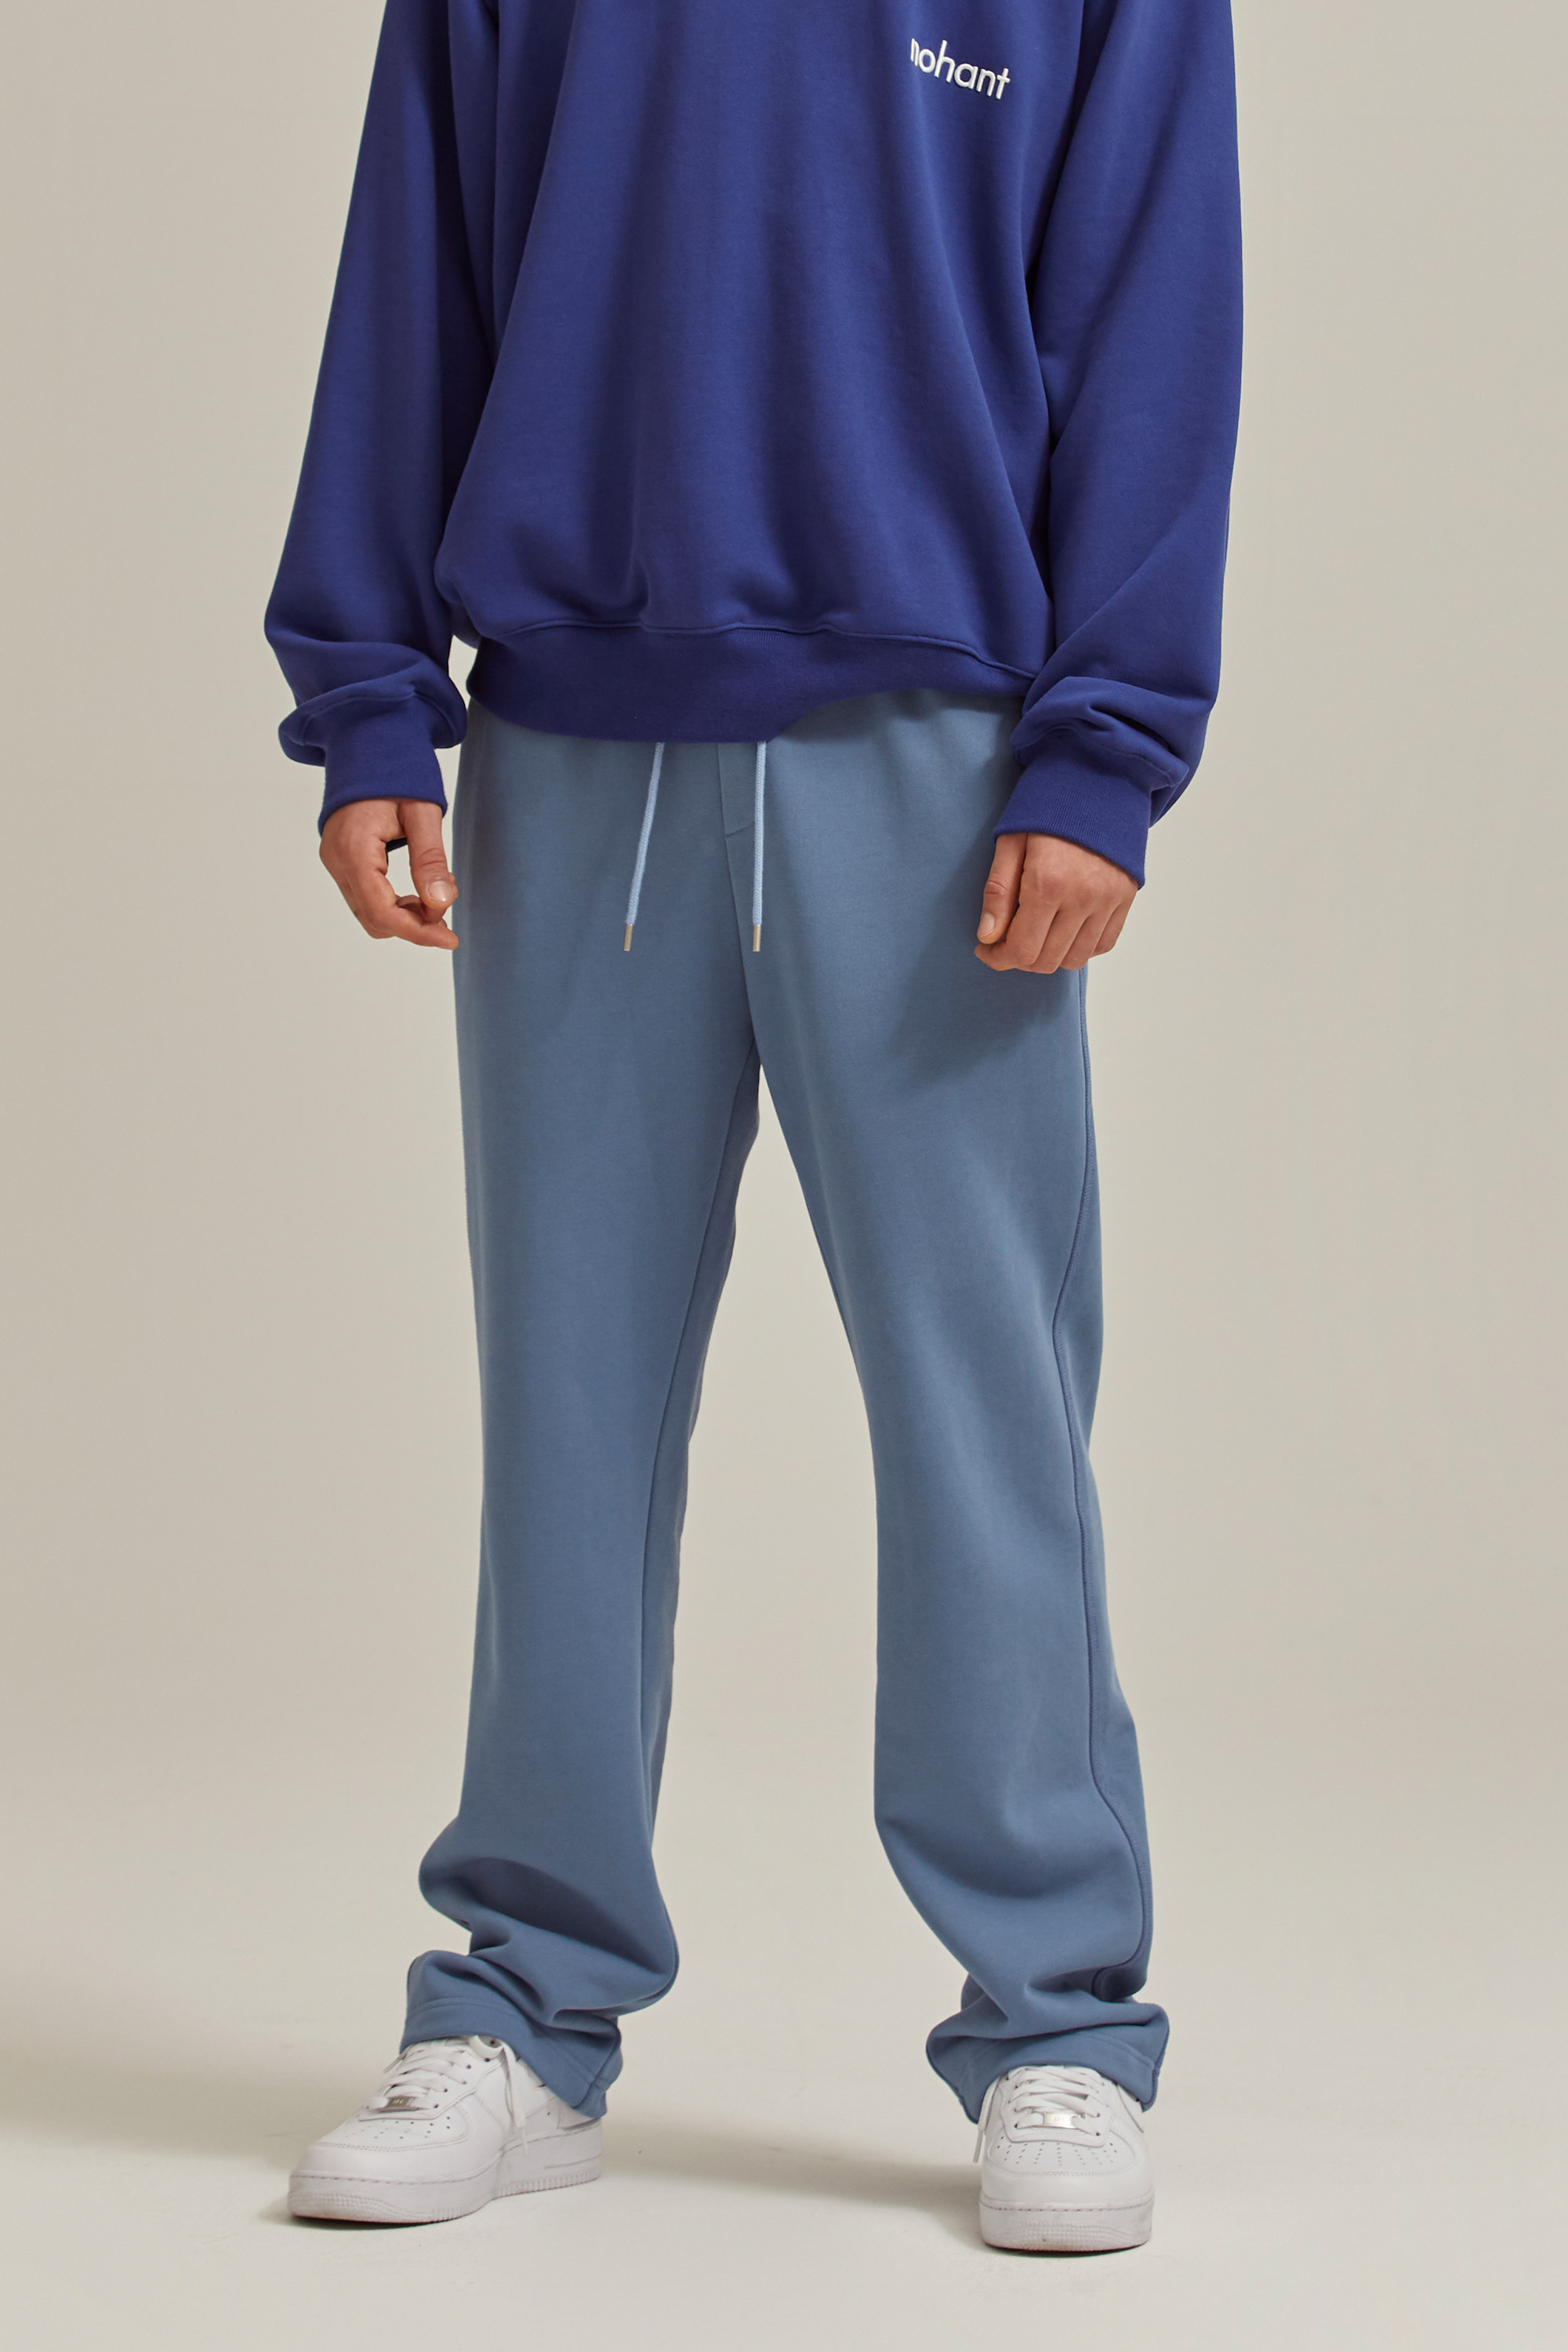 LOGO SWEATPANTS SKY BLUE